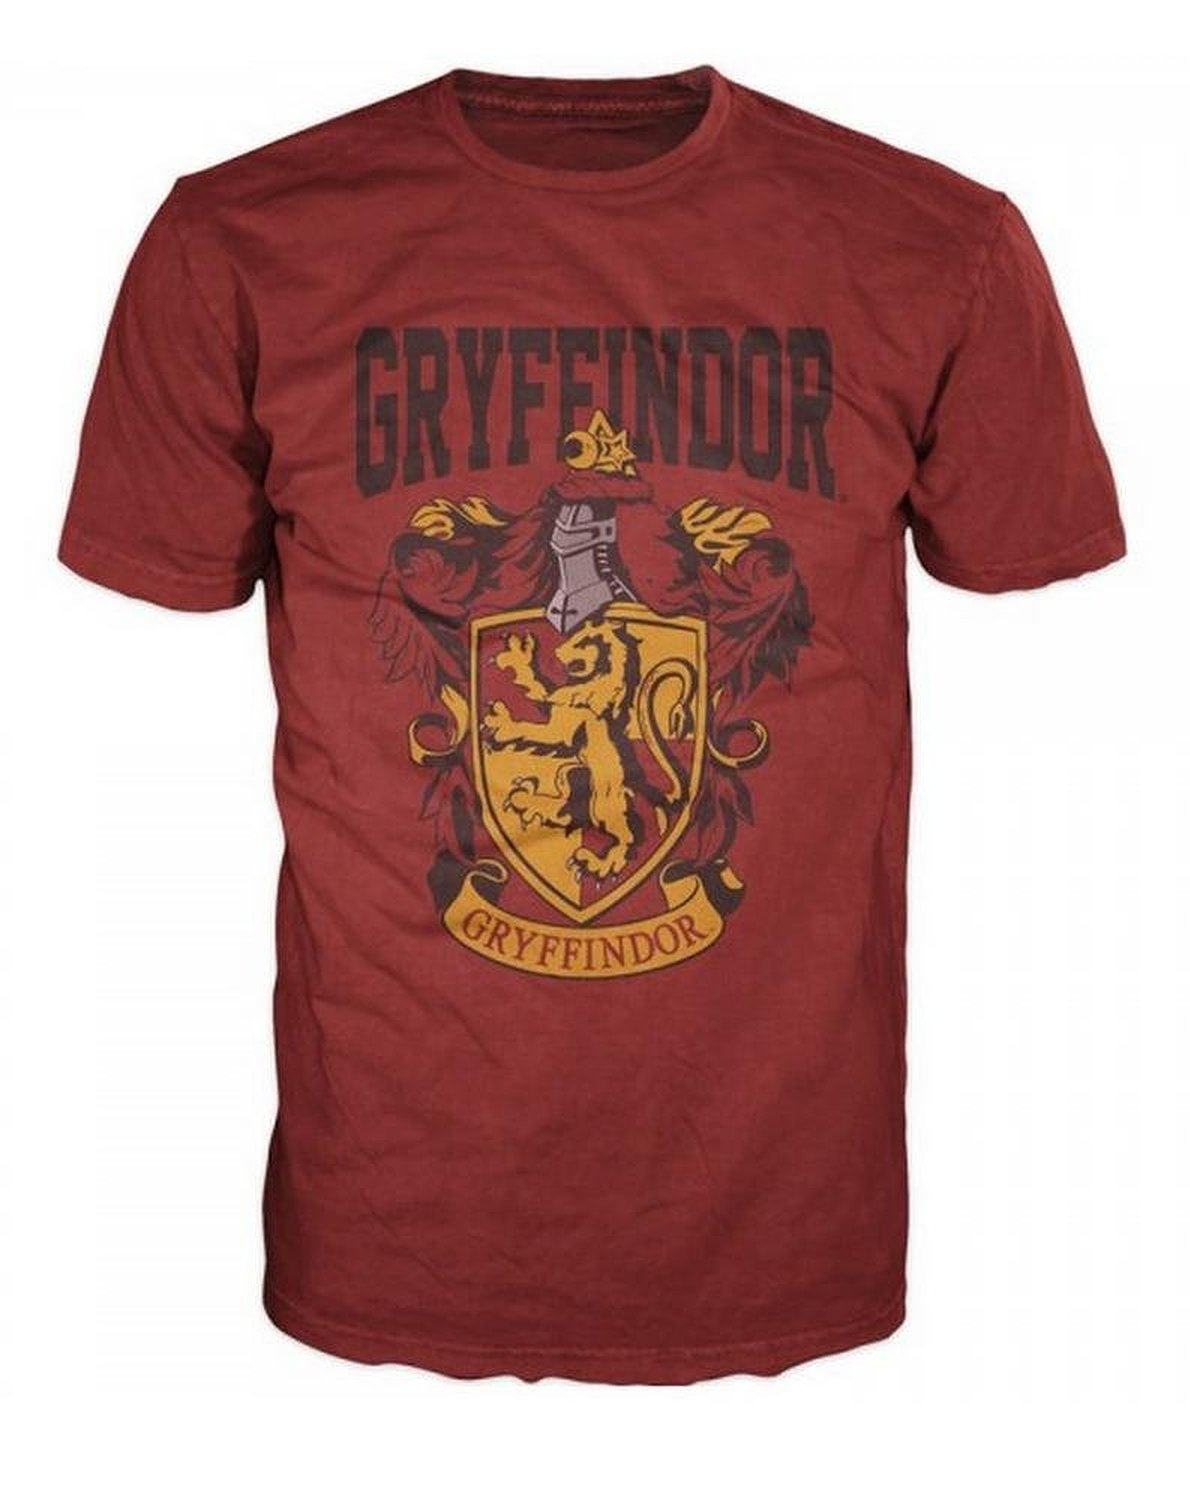 Gryffindor Shirt With Logo In Red Color